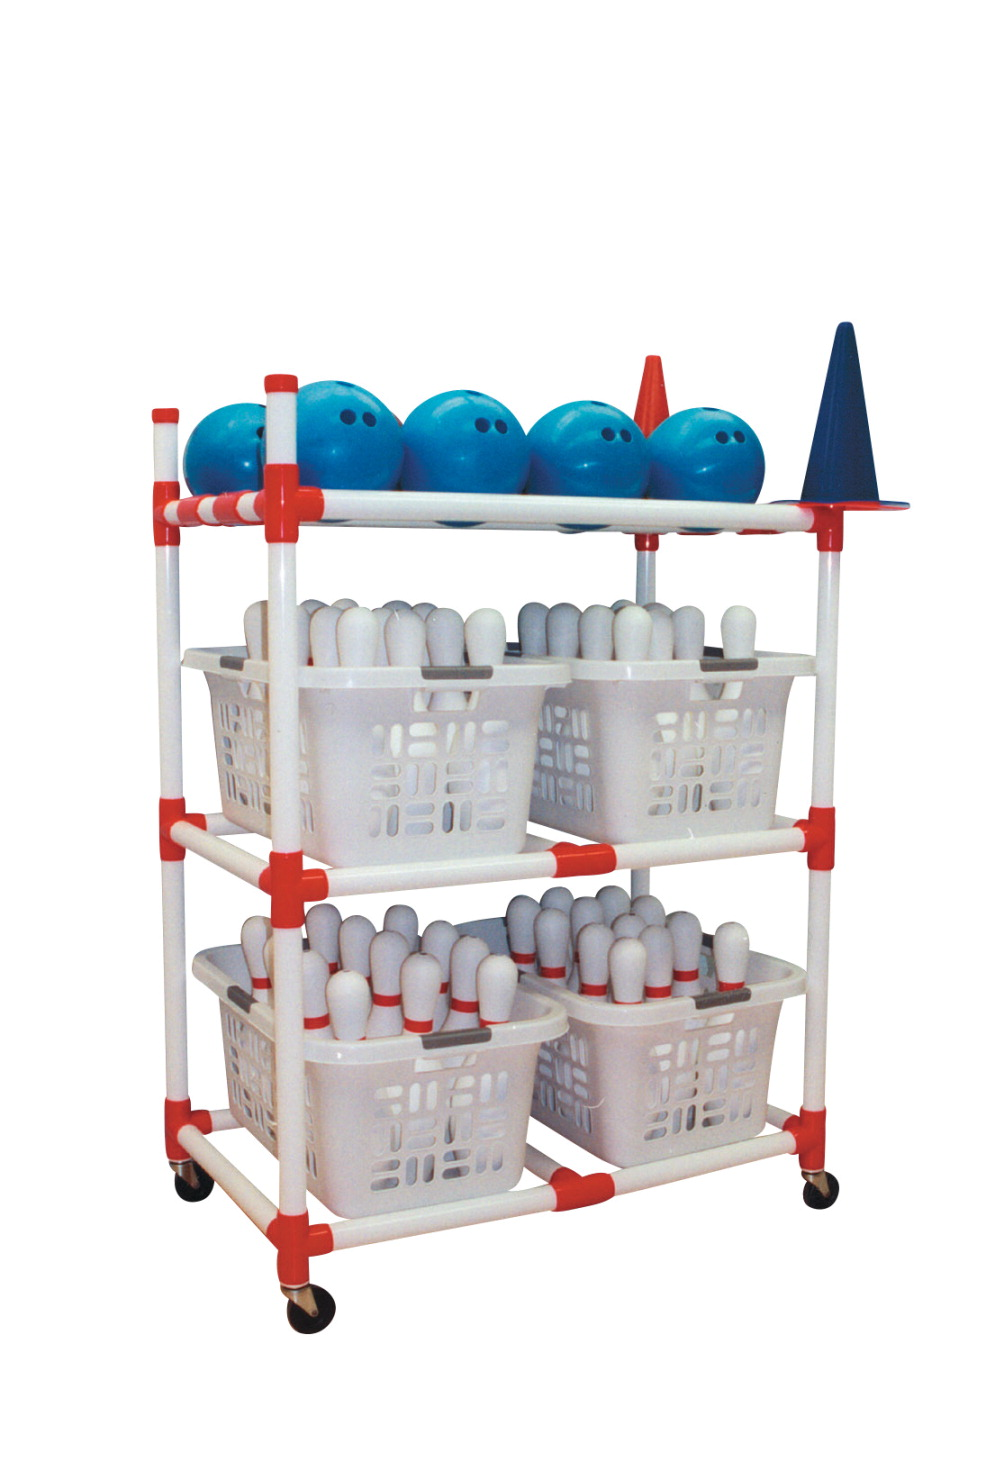 Duracart Bowling Cart with Locking Casters, 41 x 24 x 56 Inches